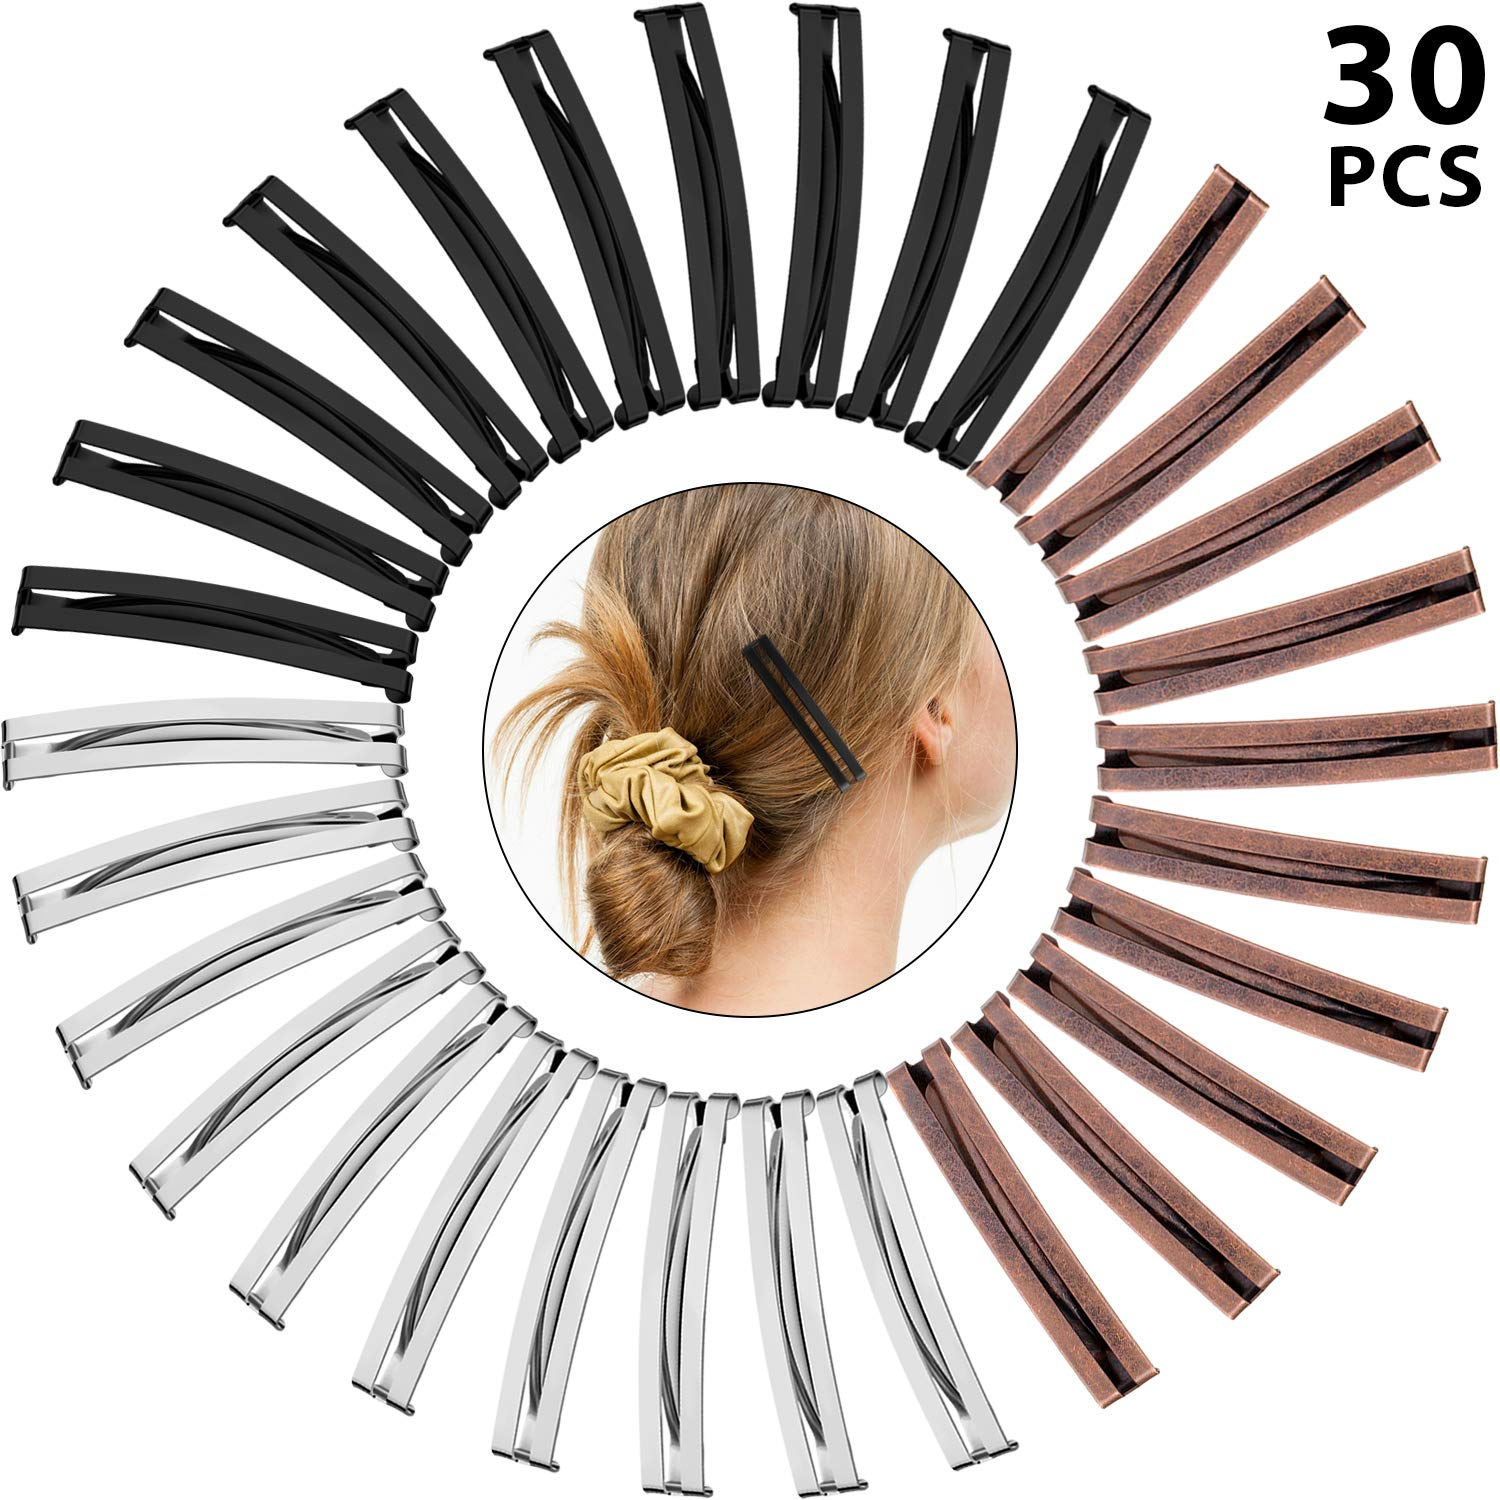 30 Pieces Open Center Domed Metal Barrettes Anti-slip Metal Hair Clip for Girls and Women, Assorted Colors (Open Center Barrette)